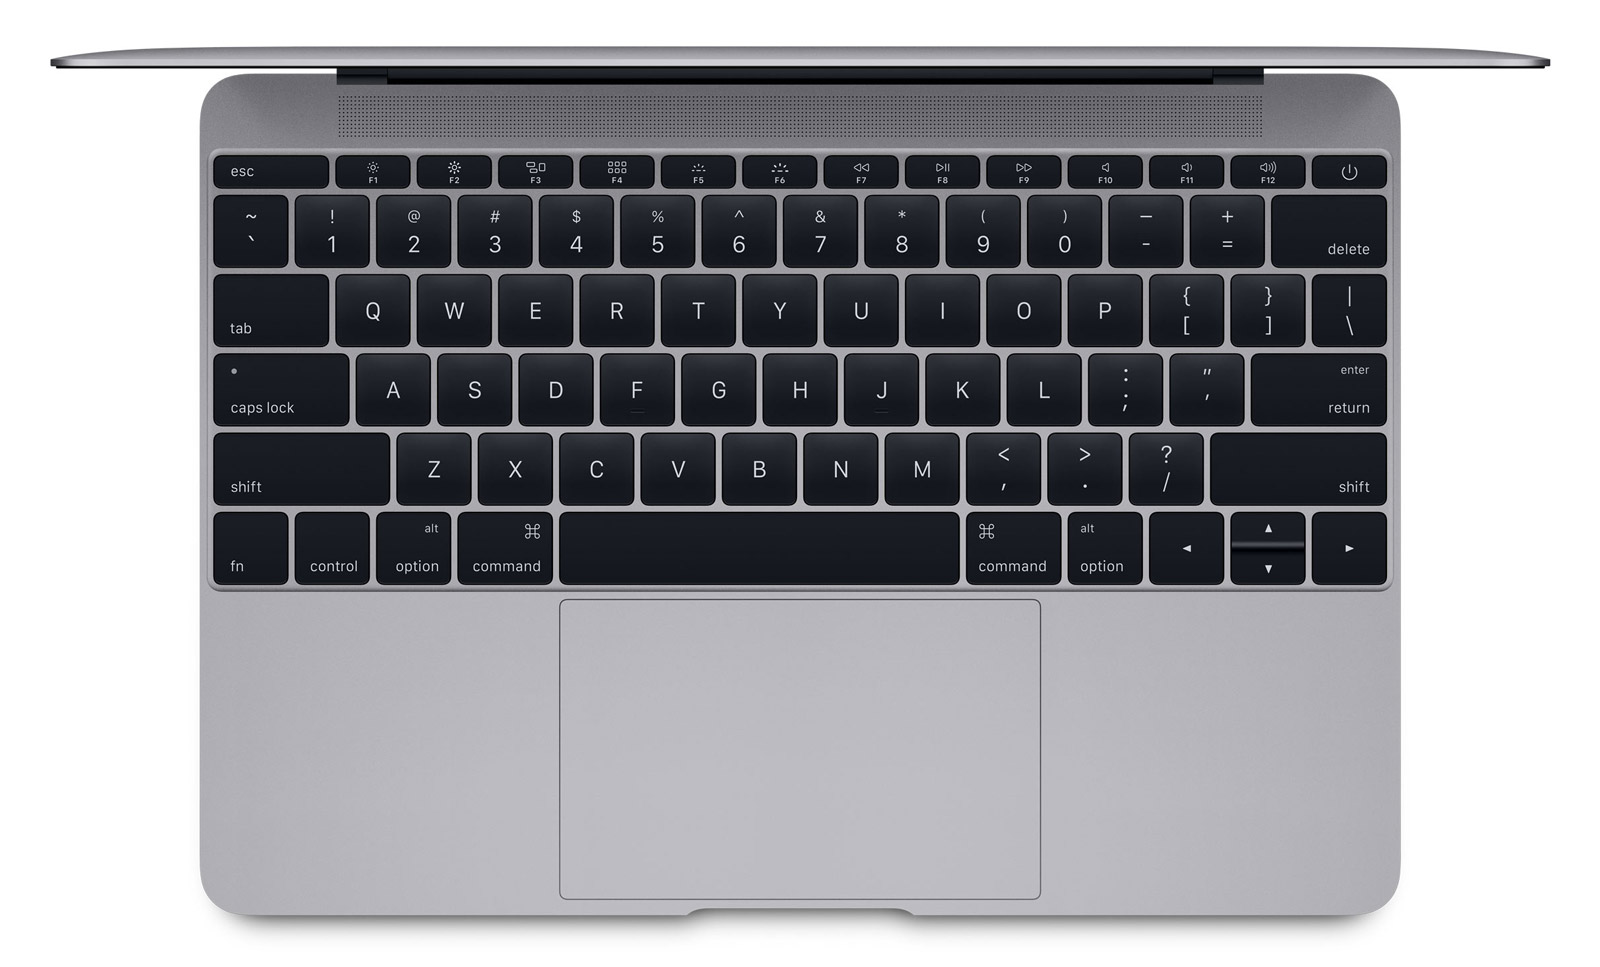 macbookclavier